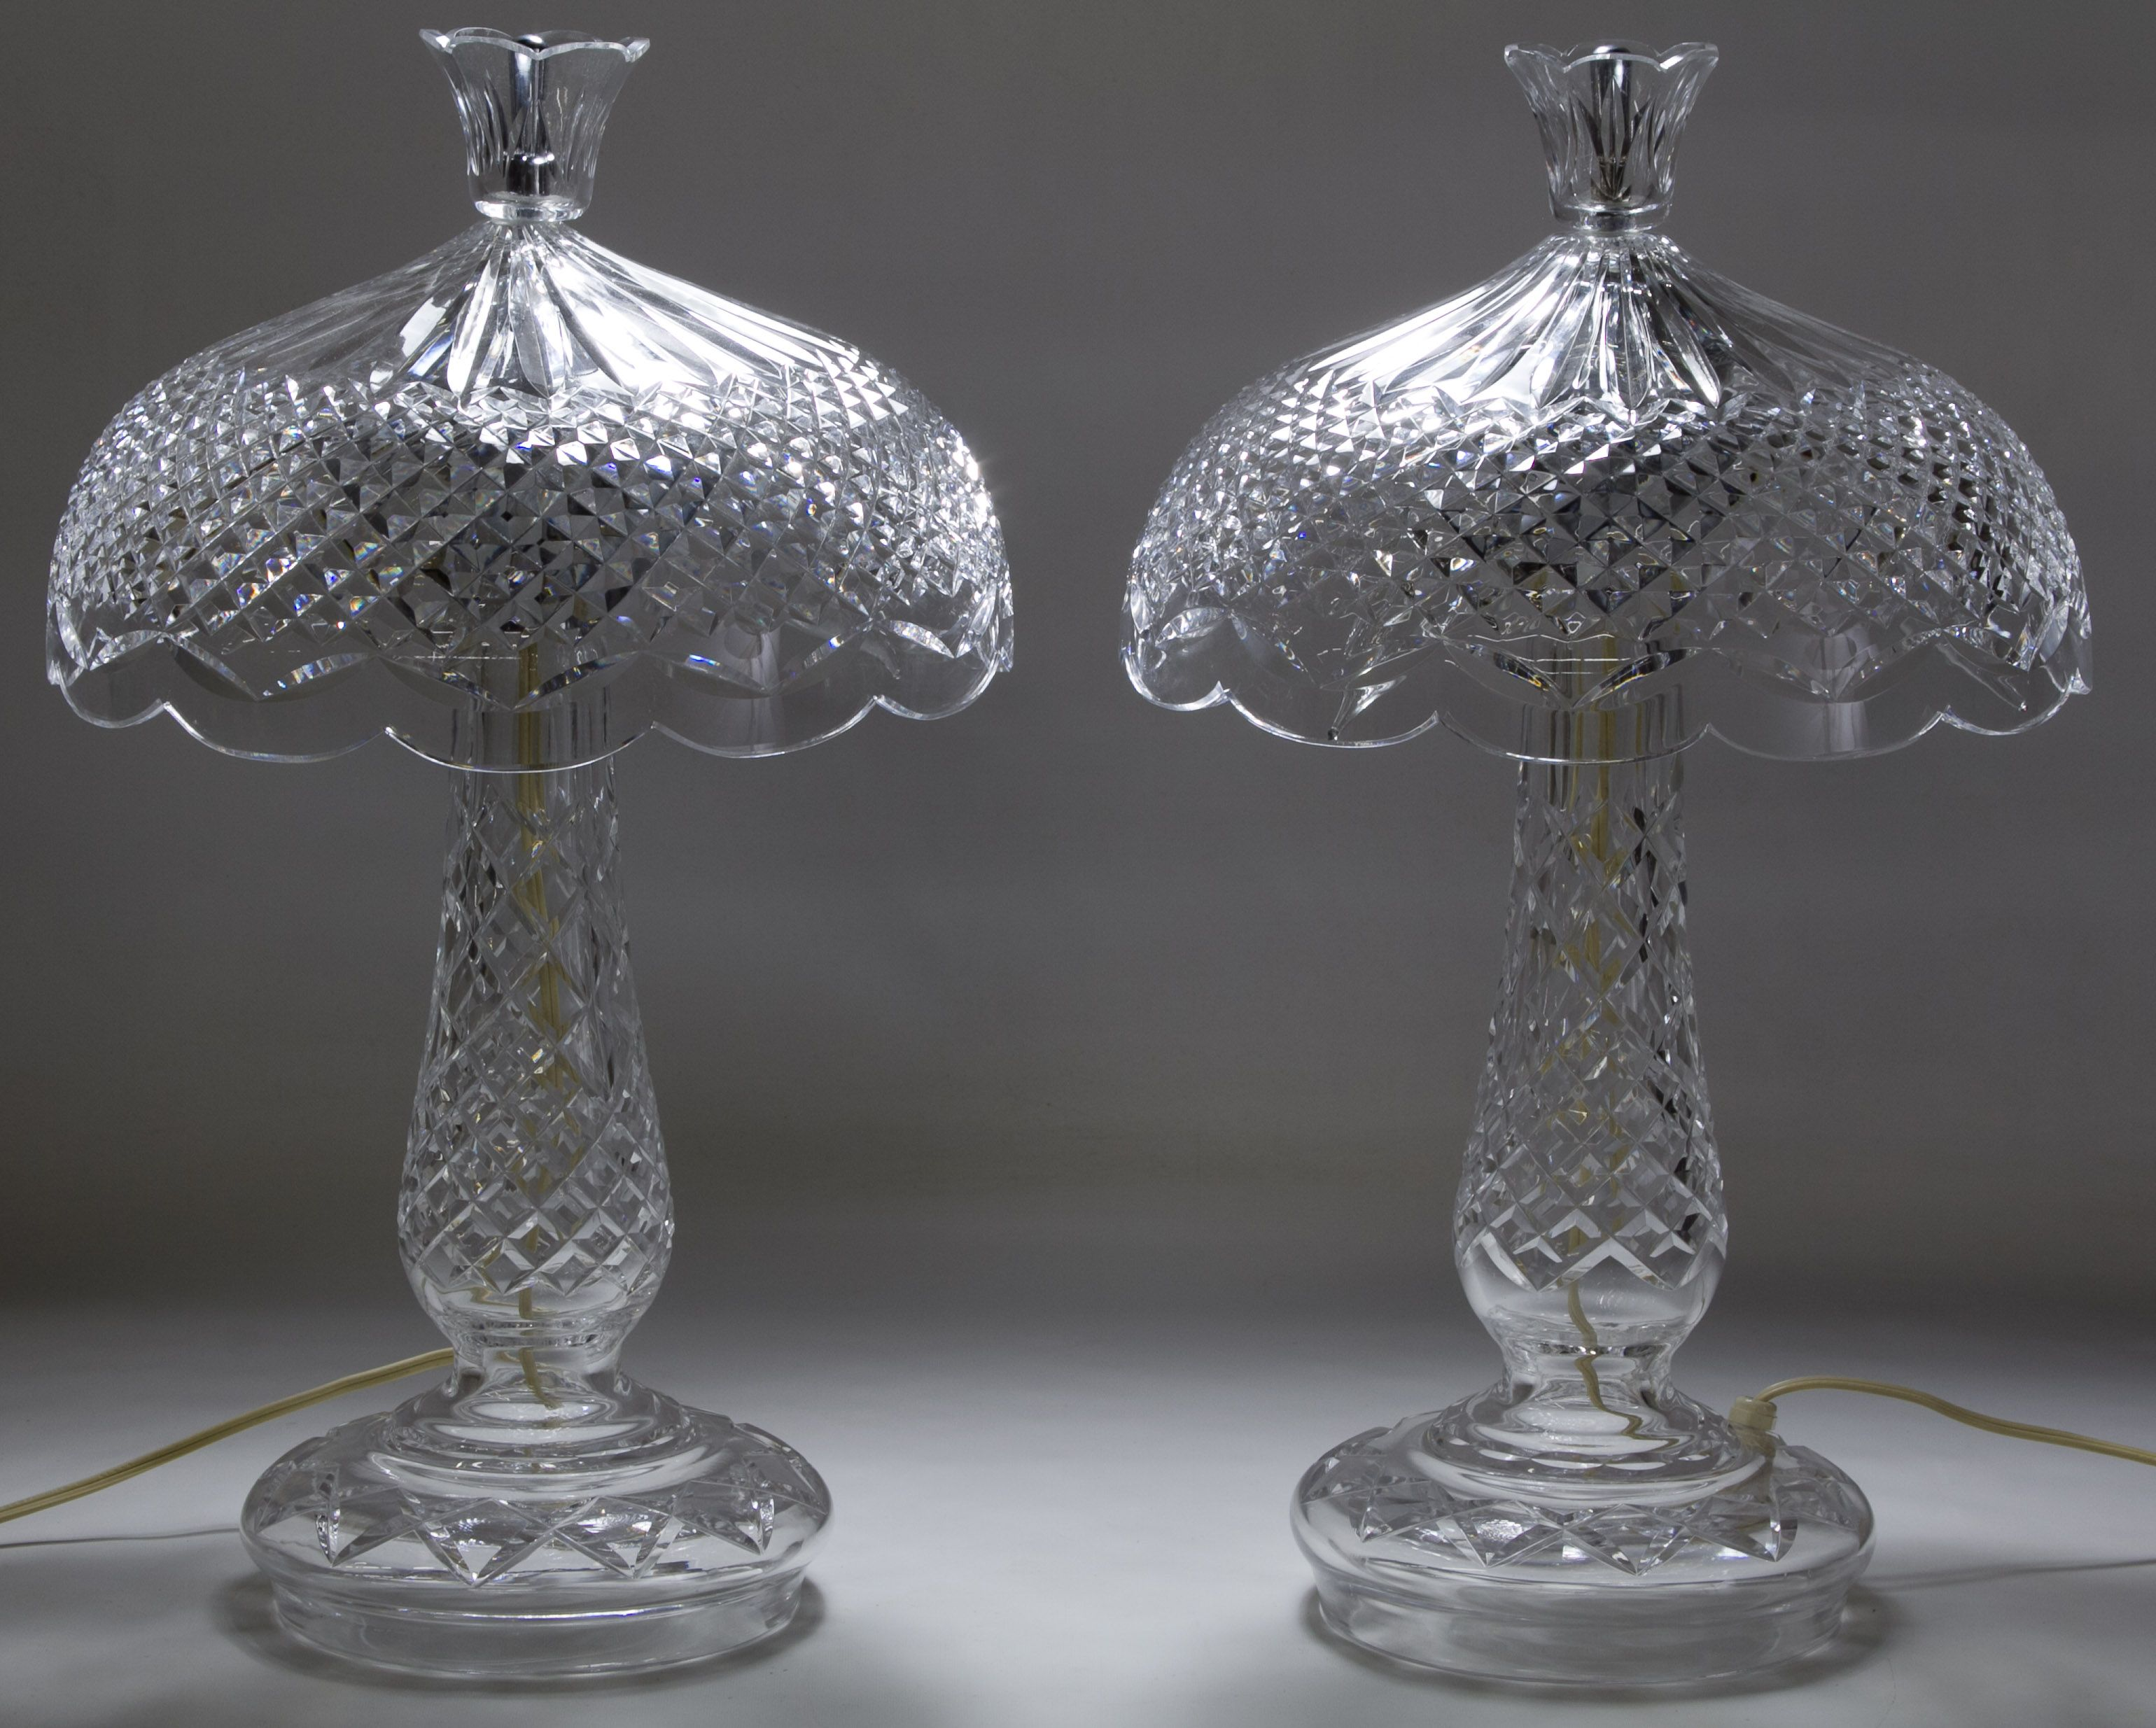 Lot 382 Waterford Crystal Achill Table Lamps Irish Stamped